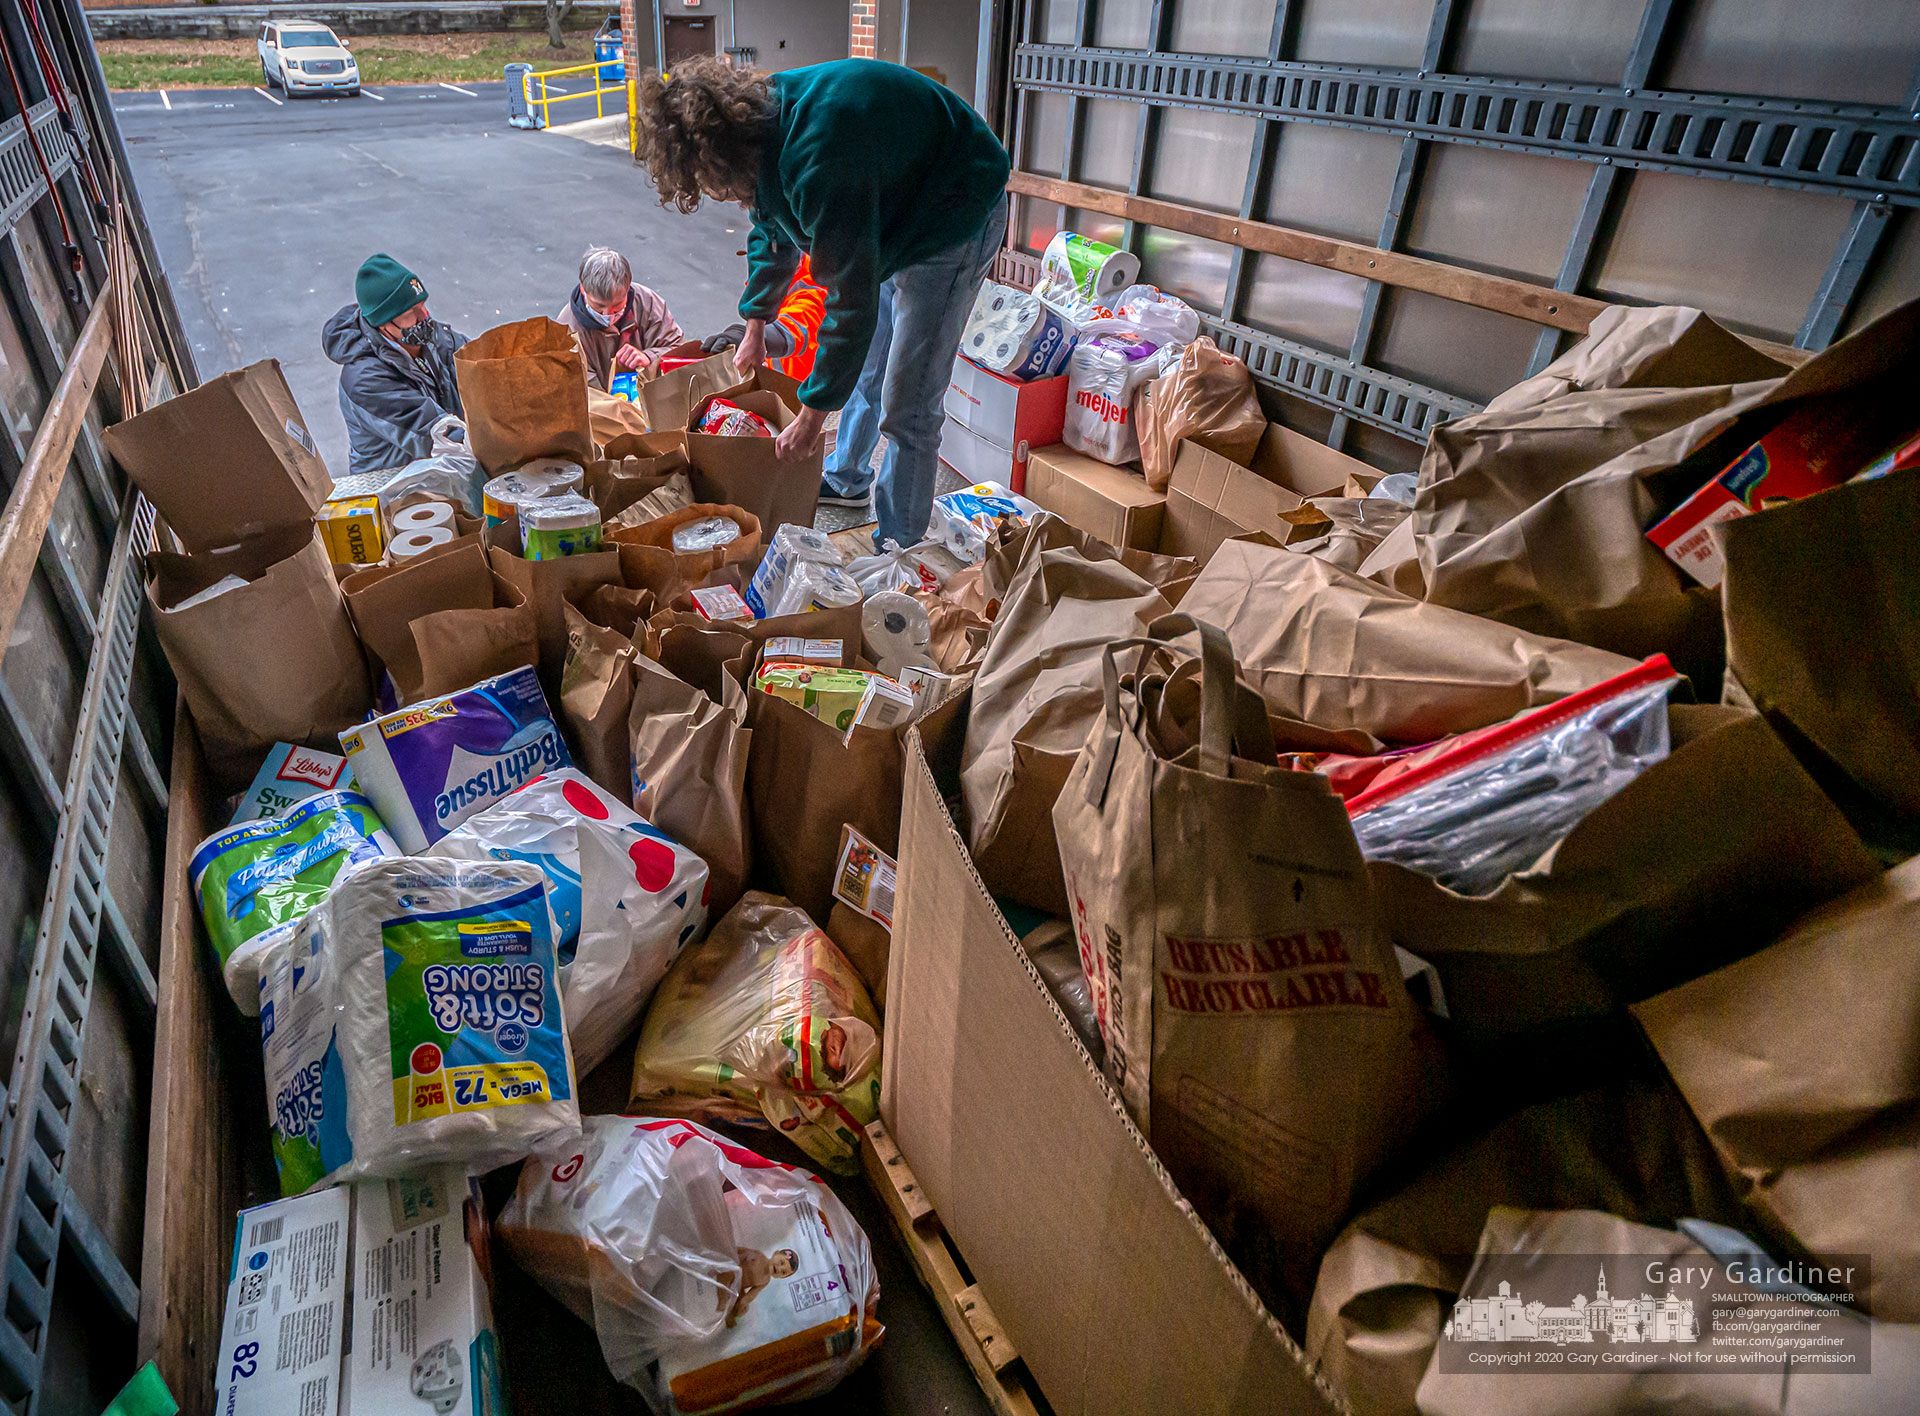 Workers and volunteers unload the final truck of food donated to W.A.R.M. where the annual food drive collected 60,000 poi=unds of food more than doubling last year's amount. My Final Photo for Dec. 5, 2020.